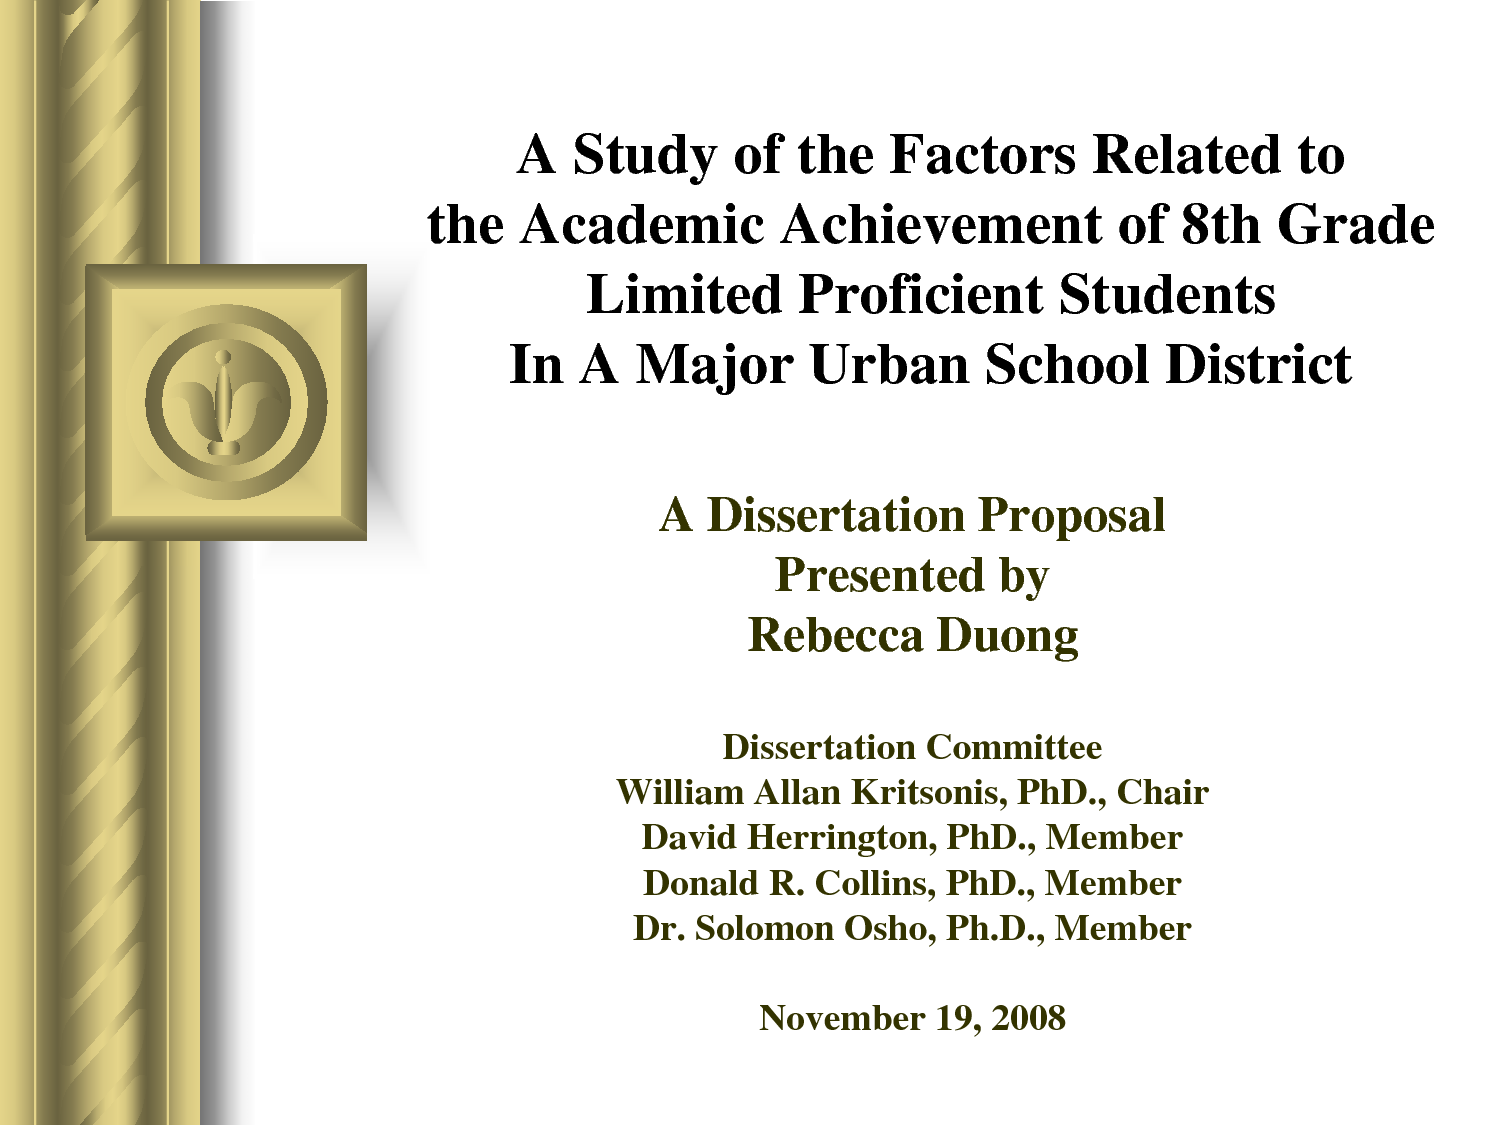 Defending dissertation proposal